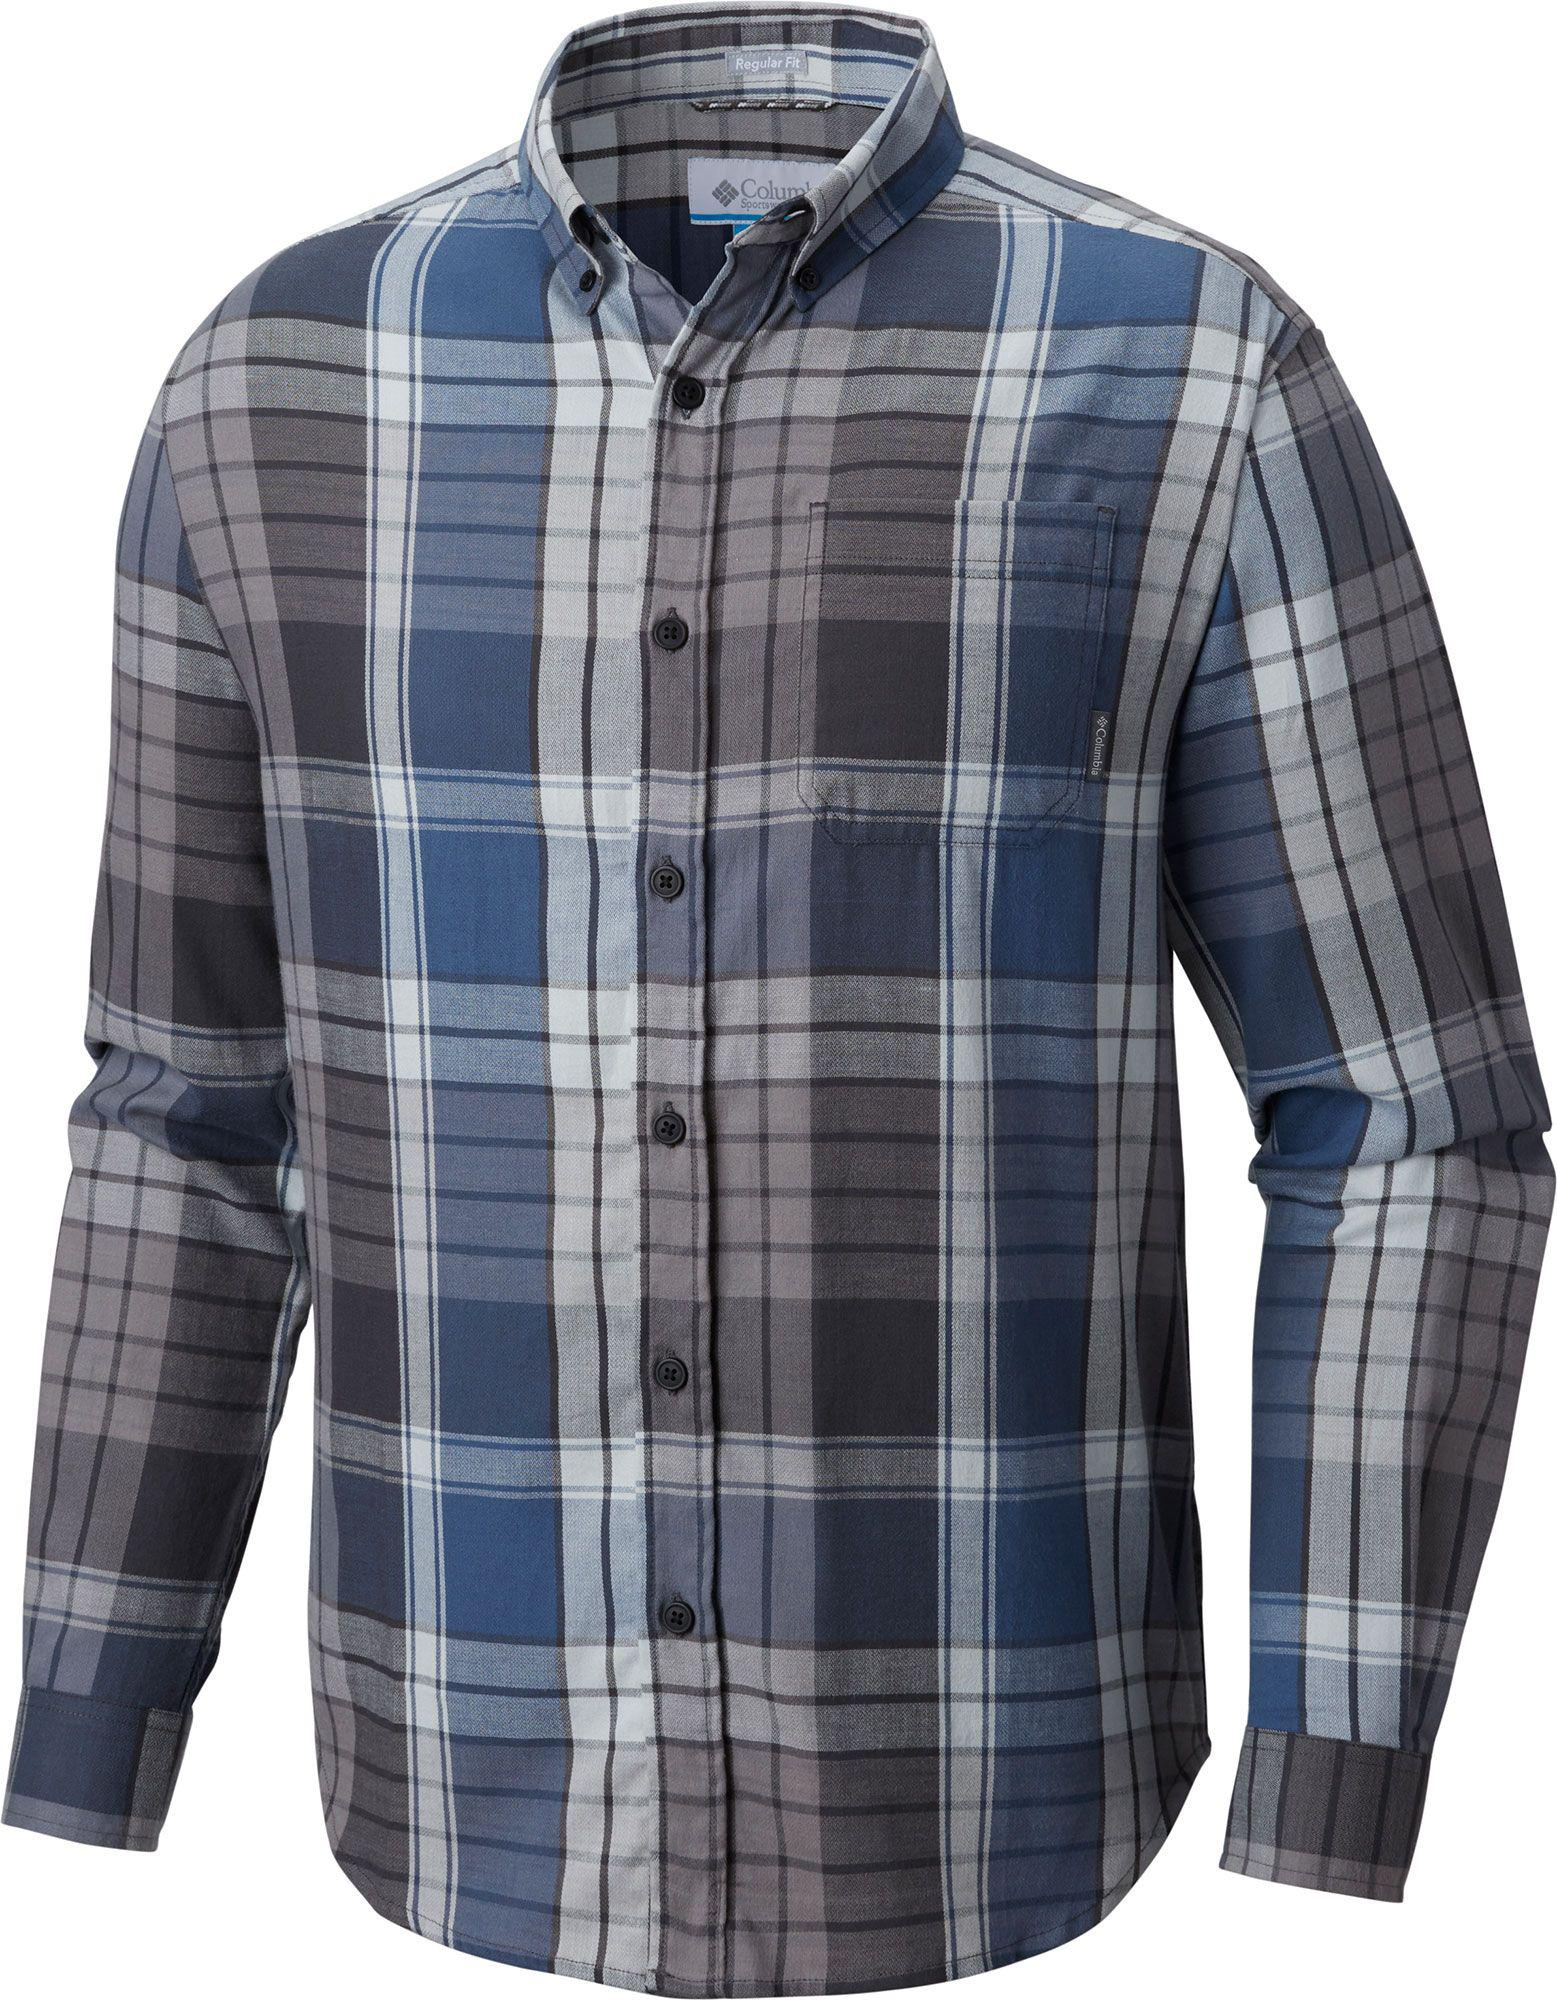 143a5fd01f8 Lyst - Columbia Long-sleeve Plaid Shirt in Blue for Men - Save 62%